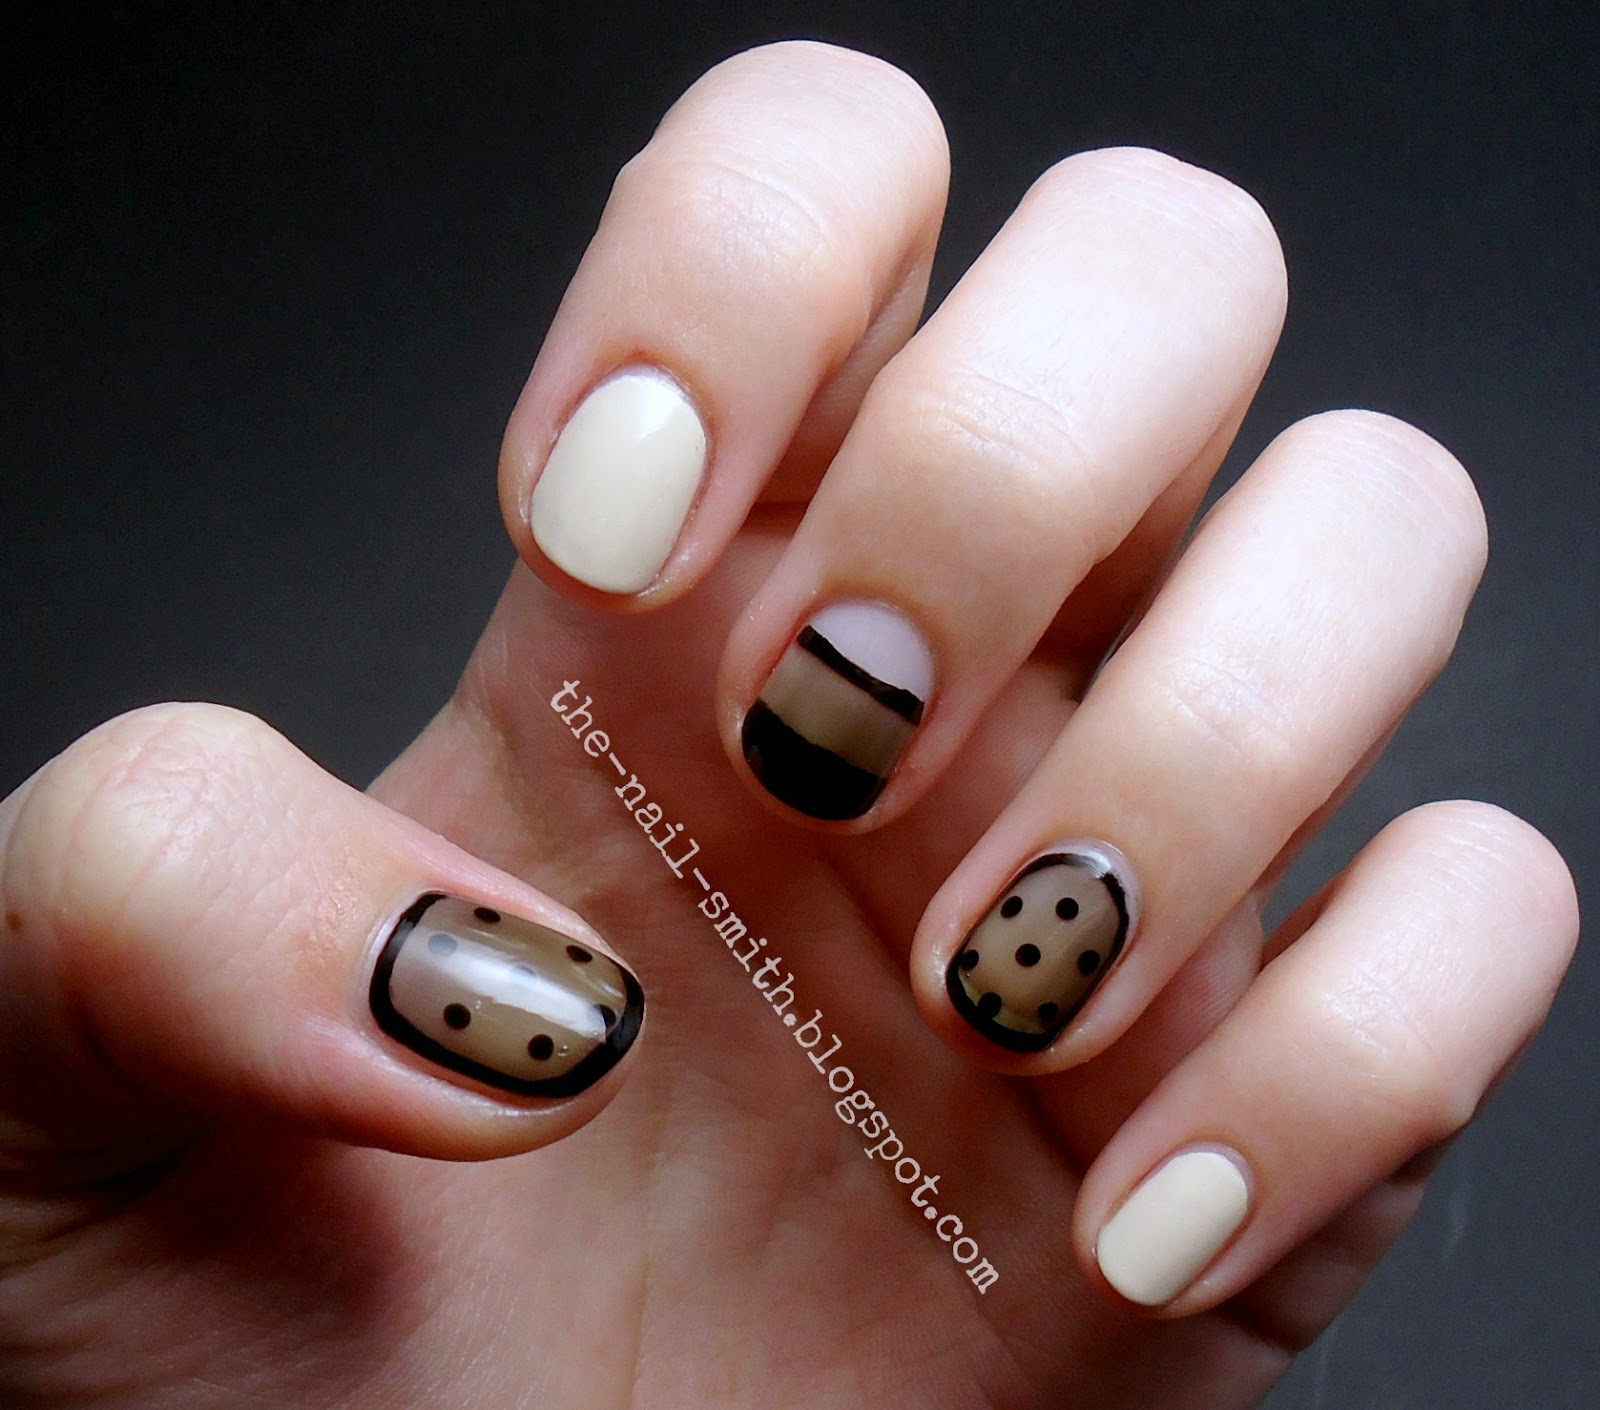 The Nail Smith: Les Nail Smiths, April 2015: Korean Nail Art Inspired